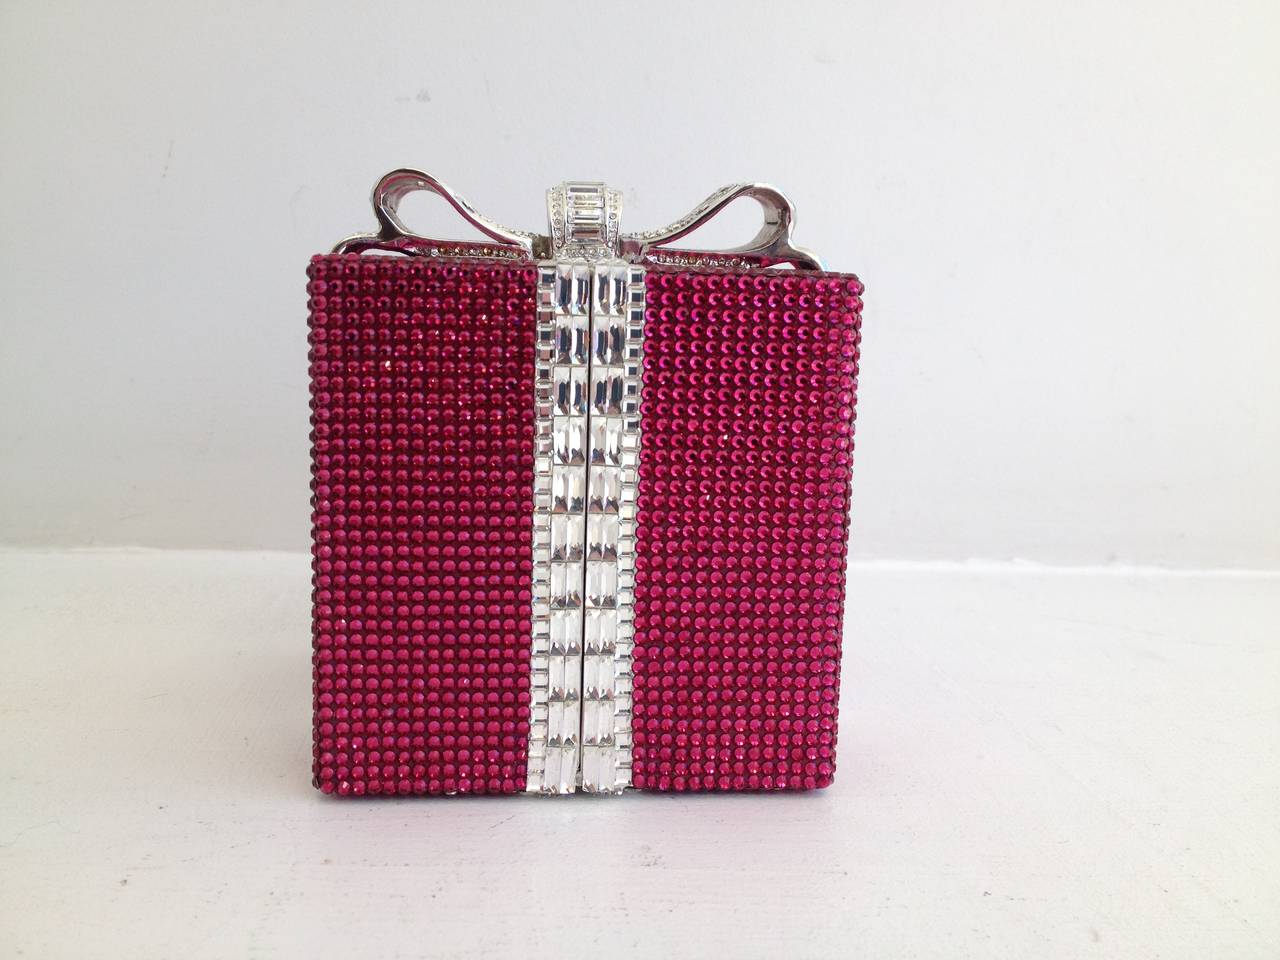 A present just for you! Wrapped in deep pink Swarovski crystals and tied with a silvery clear crystal bow, this little clutch is impeccable. The boxy silver interior fits a lipstick and your credit card, and the optional handle drops 8 inches to the